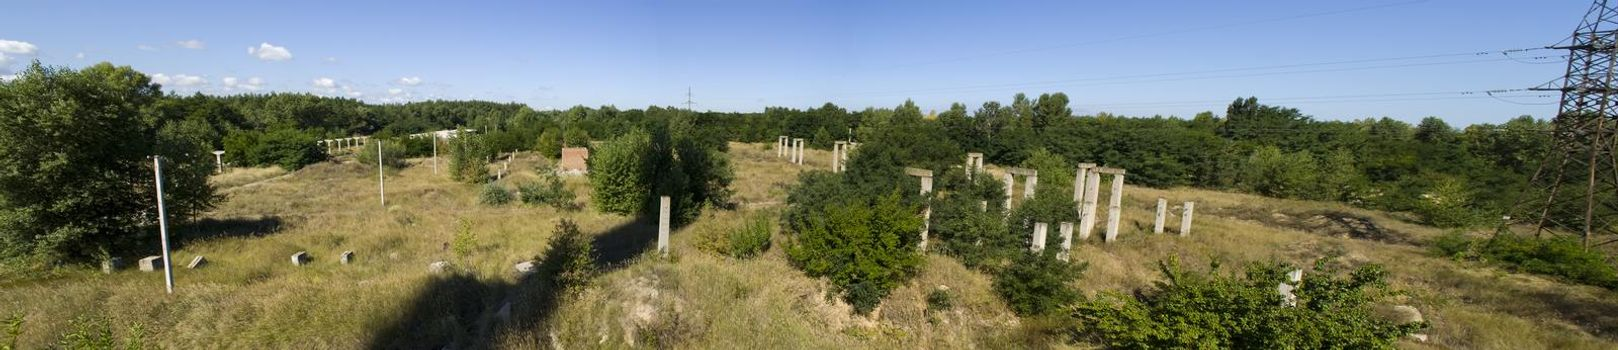 panorama of piles of destroyed buildings overgrown with grass and trees.